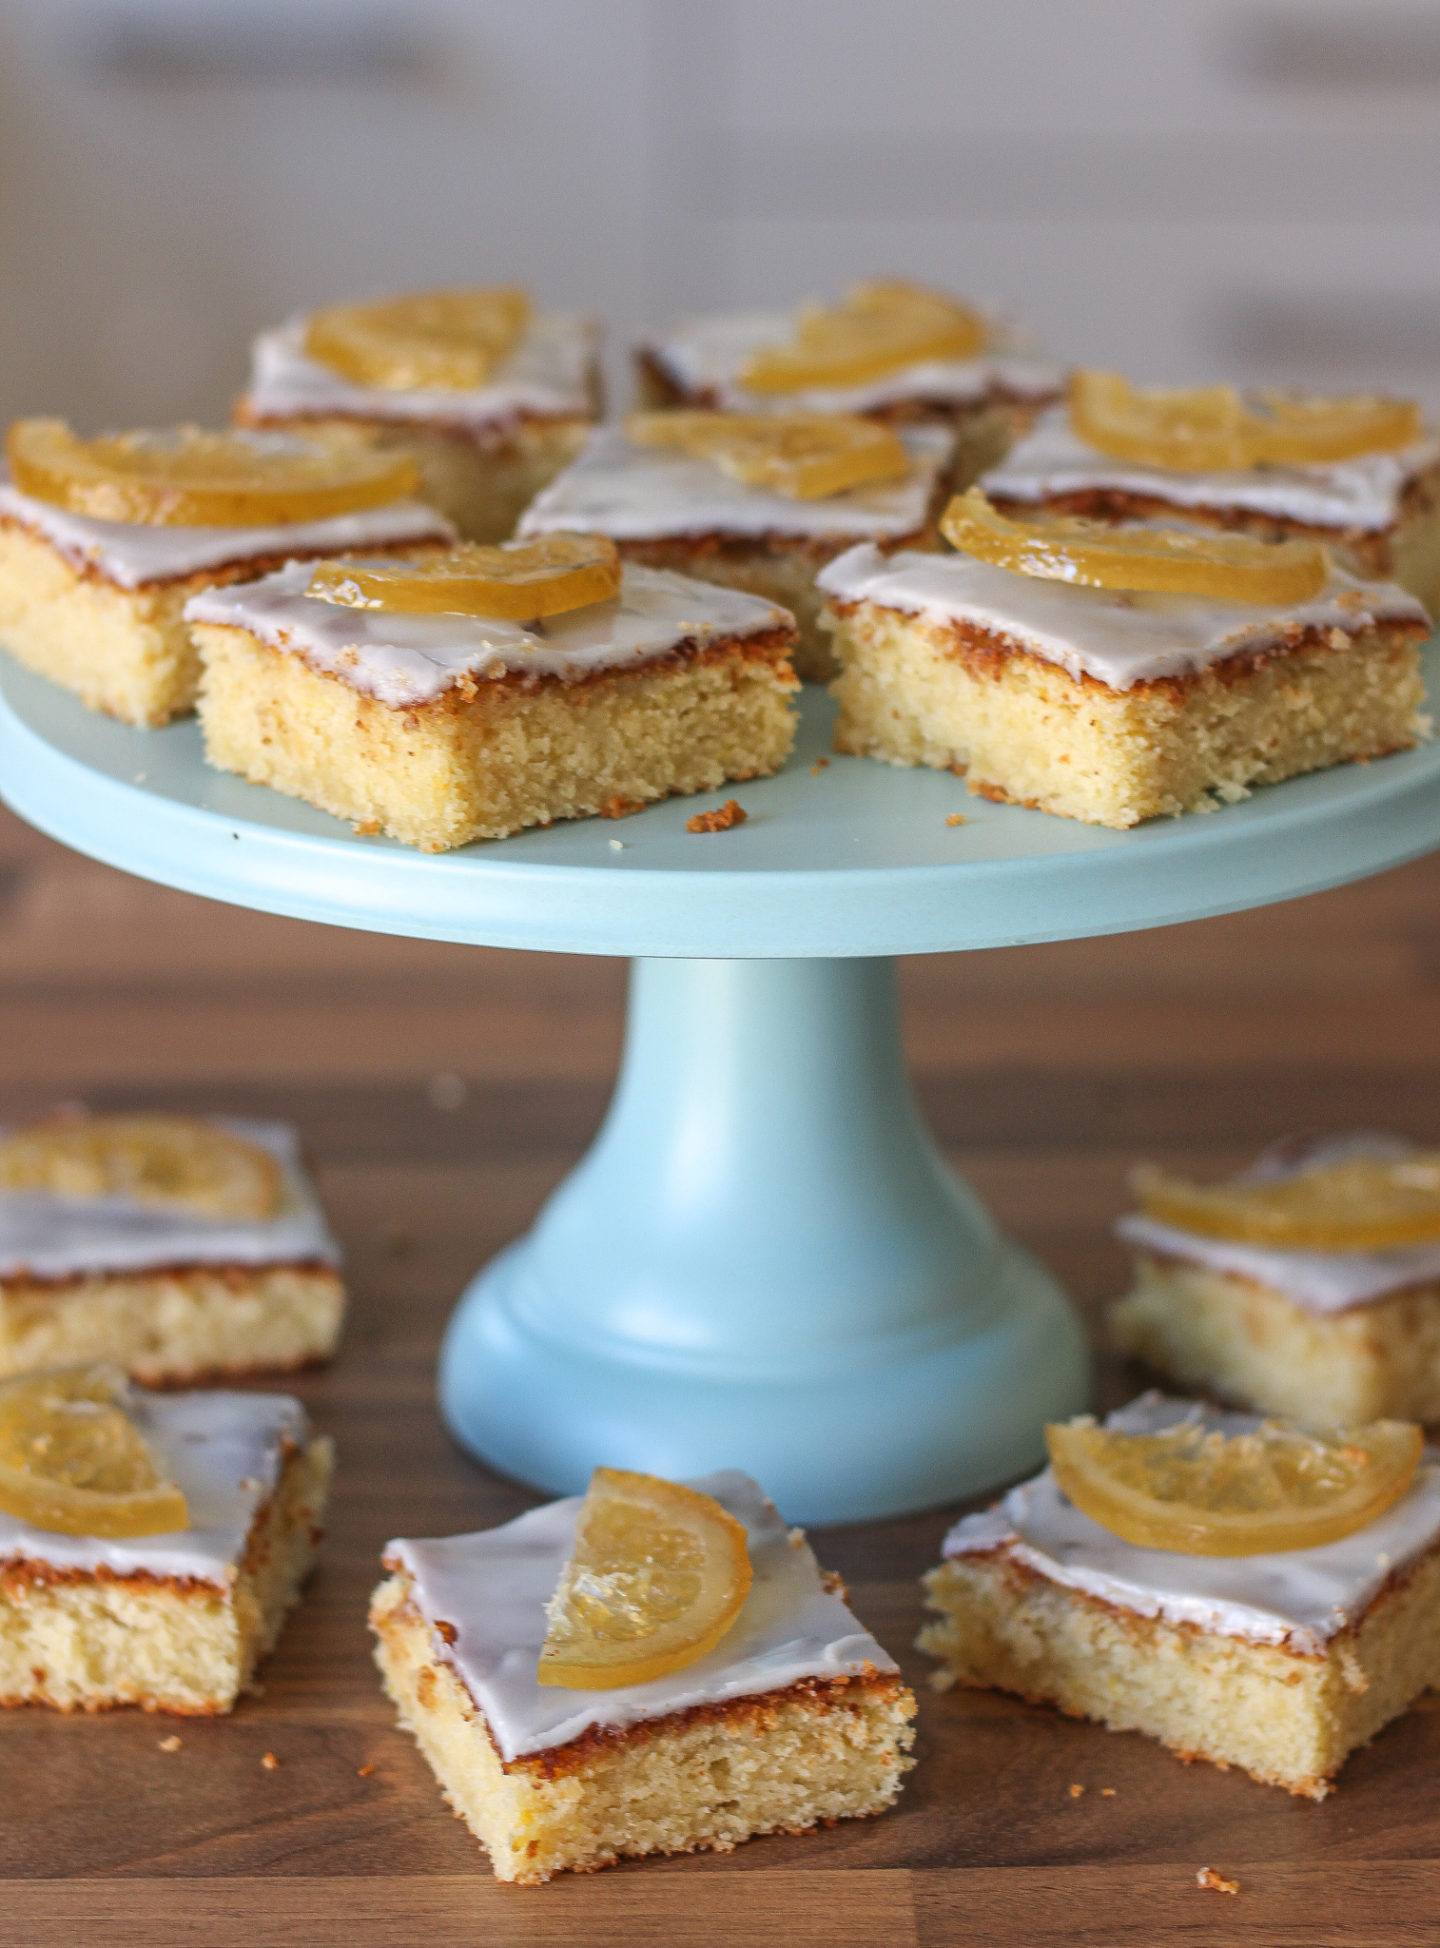 several of the bake off box: lemony lemon slices on and around a blue cake stand